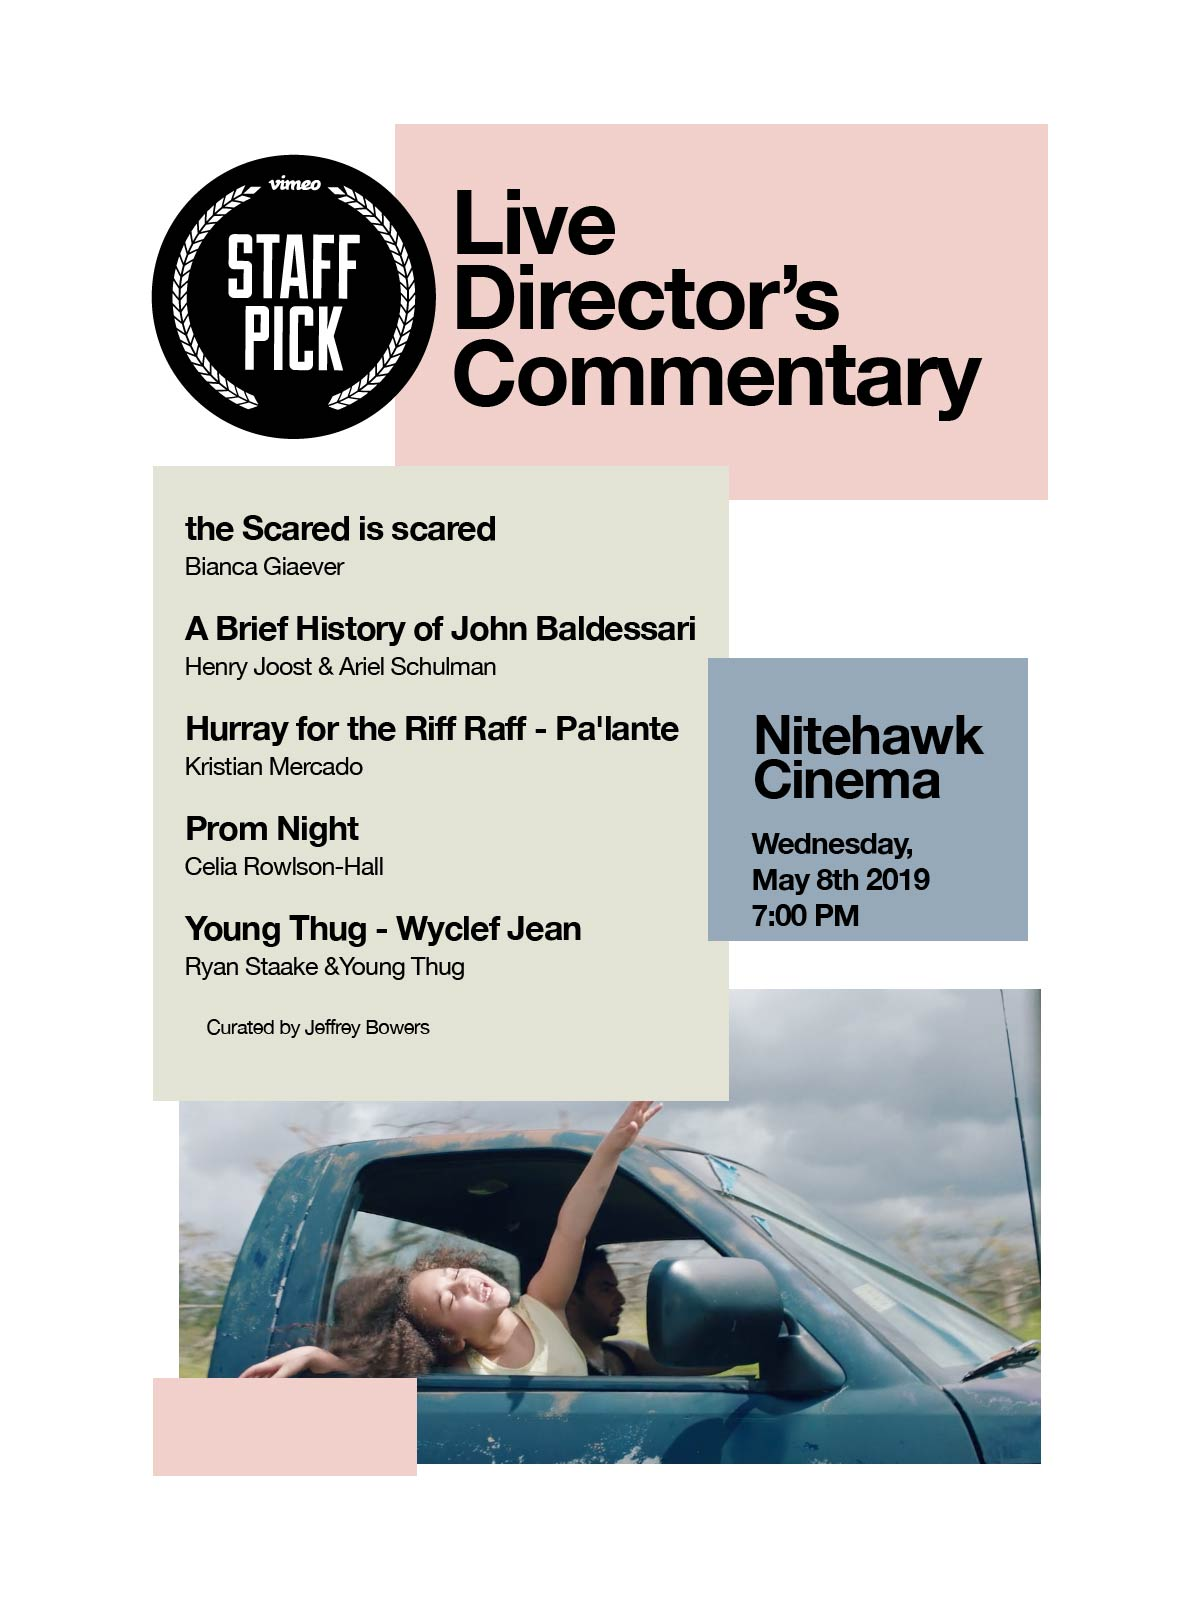 Poster for Vimeo Staff Picks with Live Director's Commentary #3